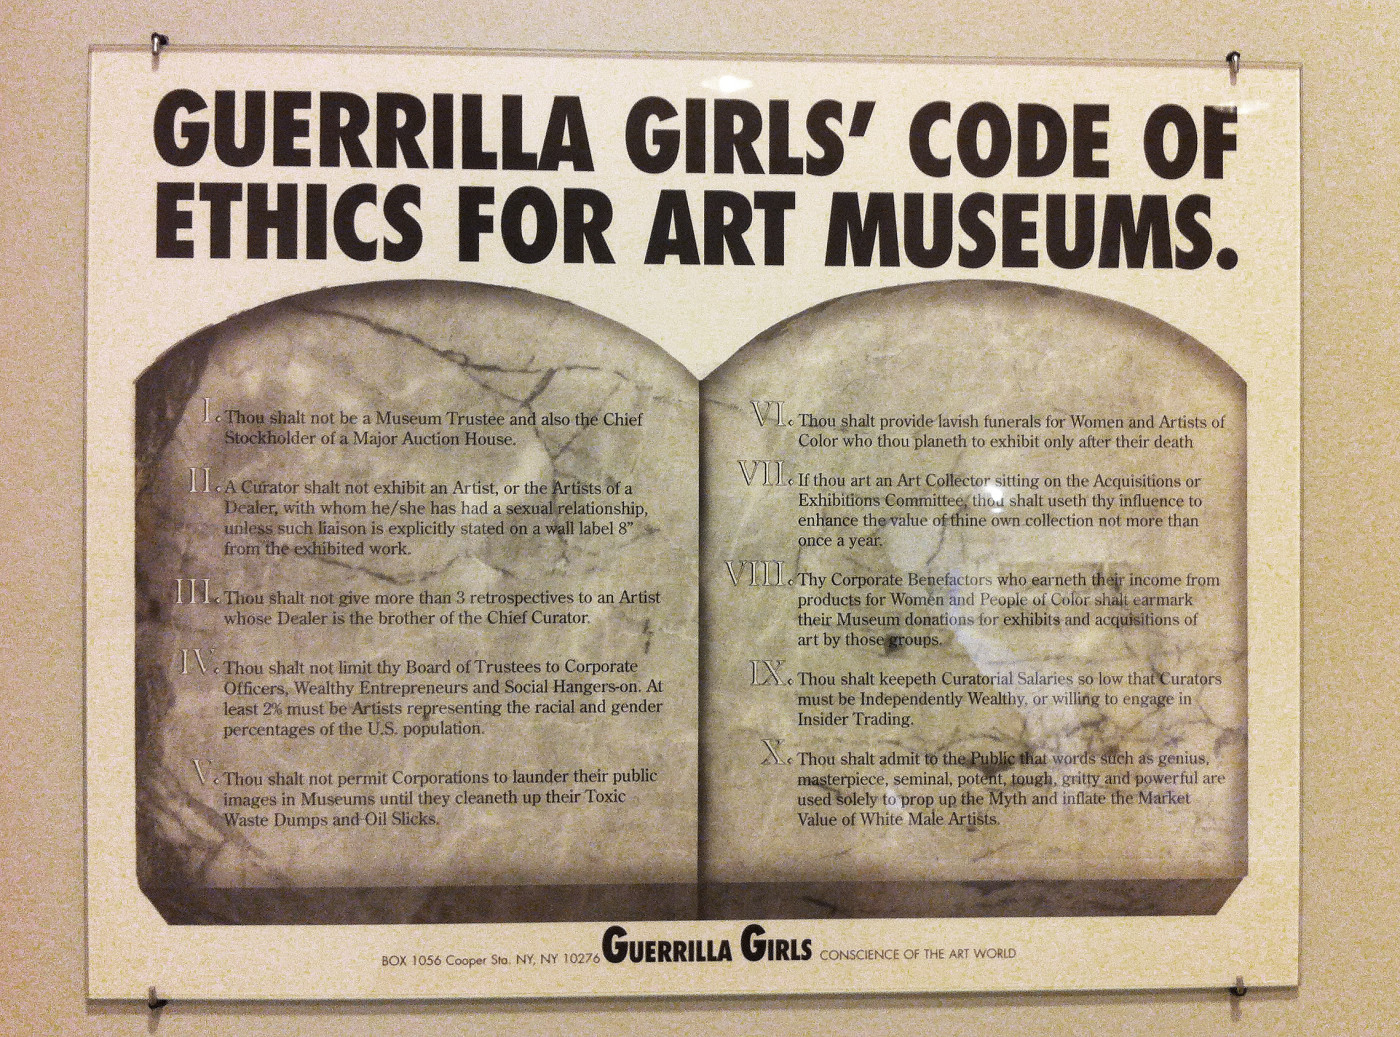 800_guerrilla-girls